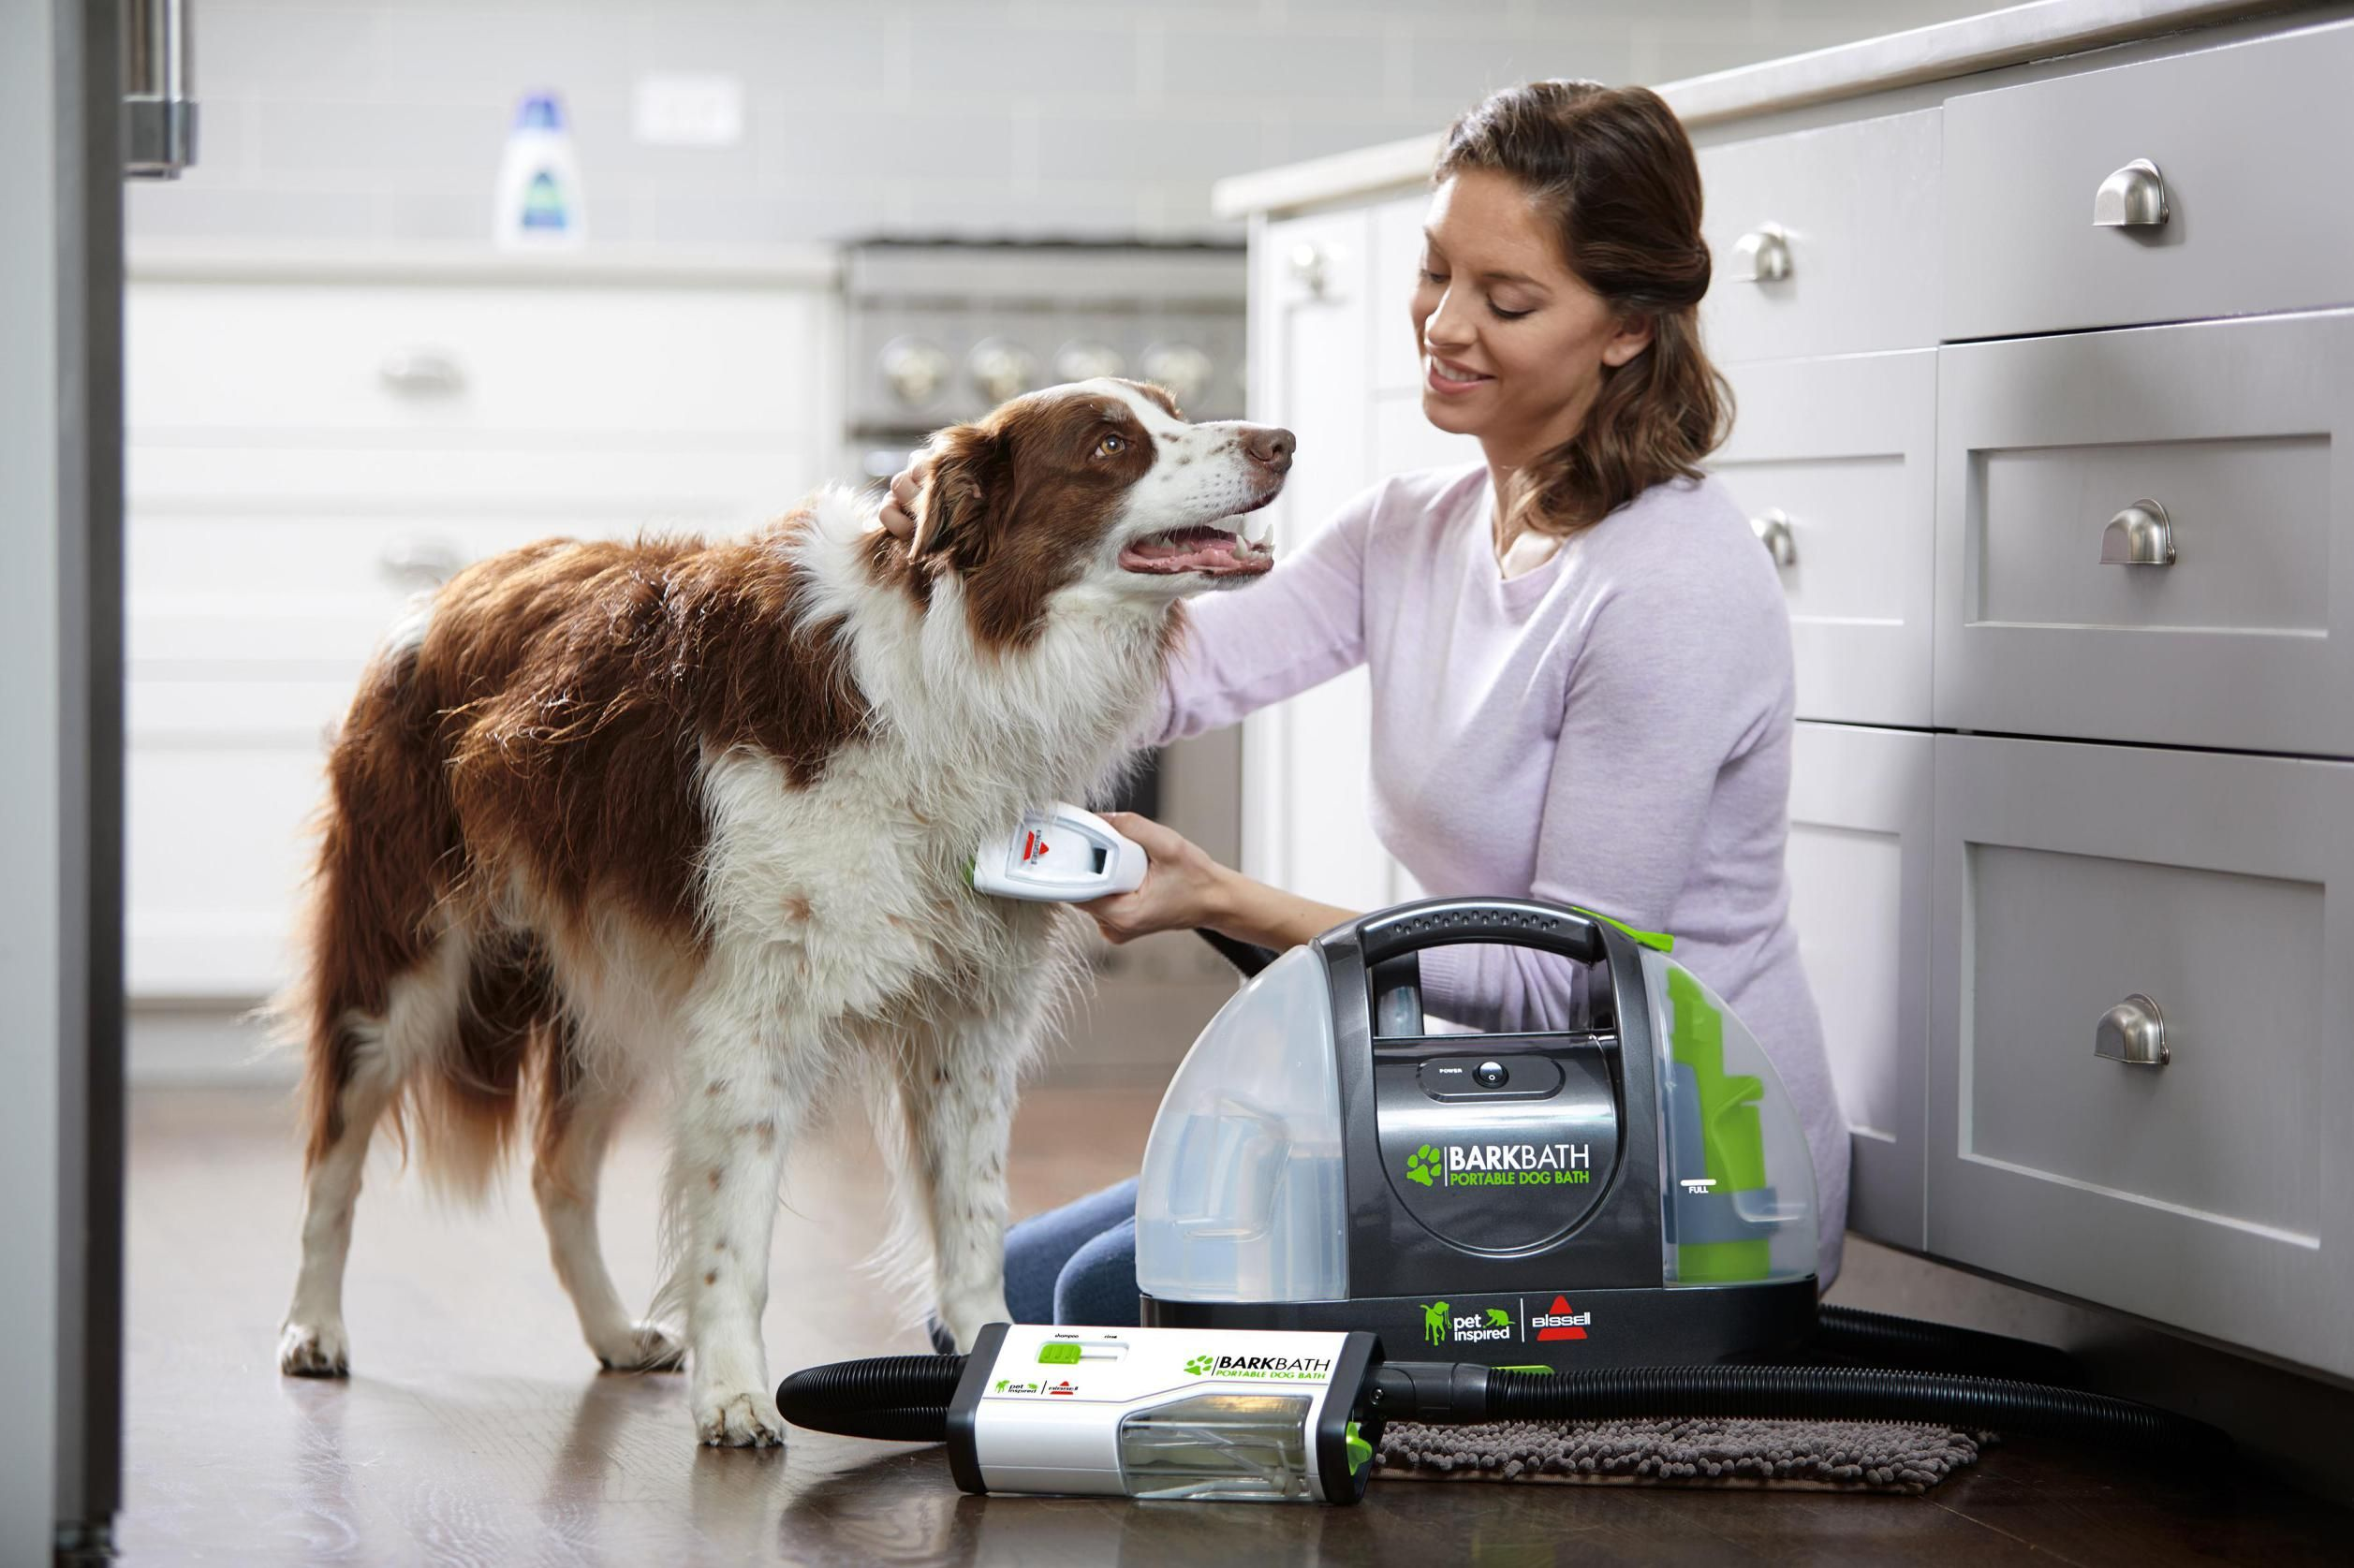 Bissell barkbath giveaway with canadian tire dog bath